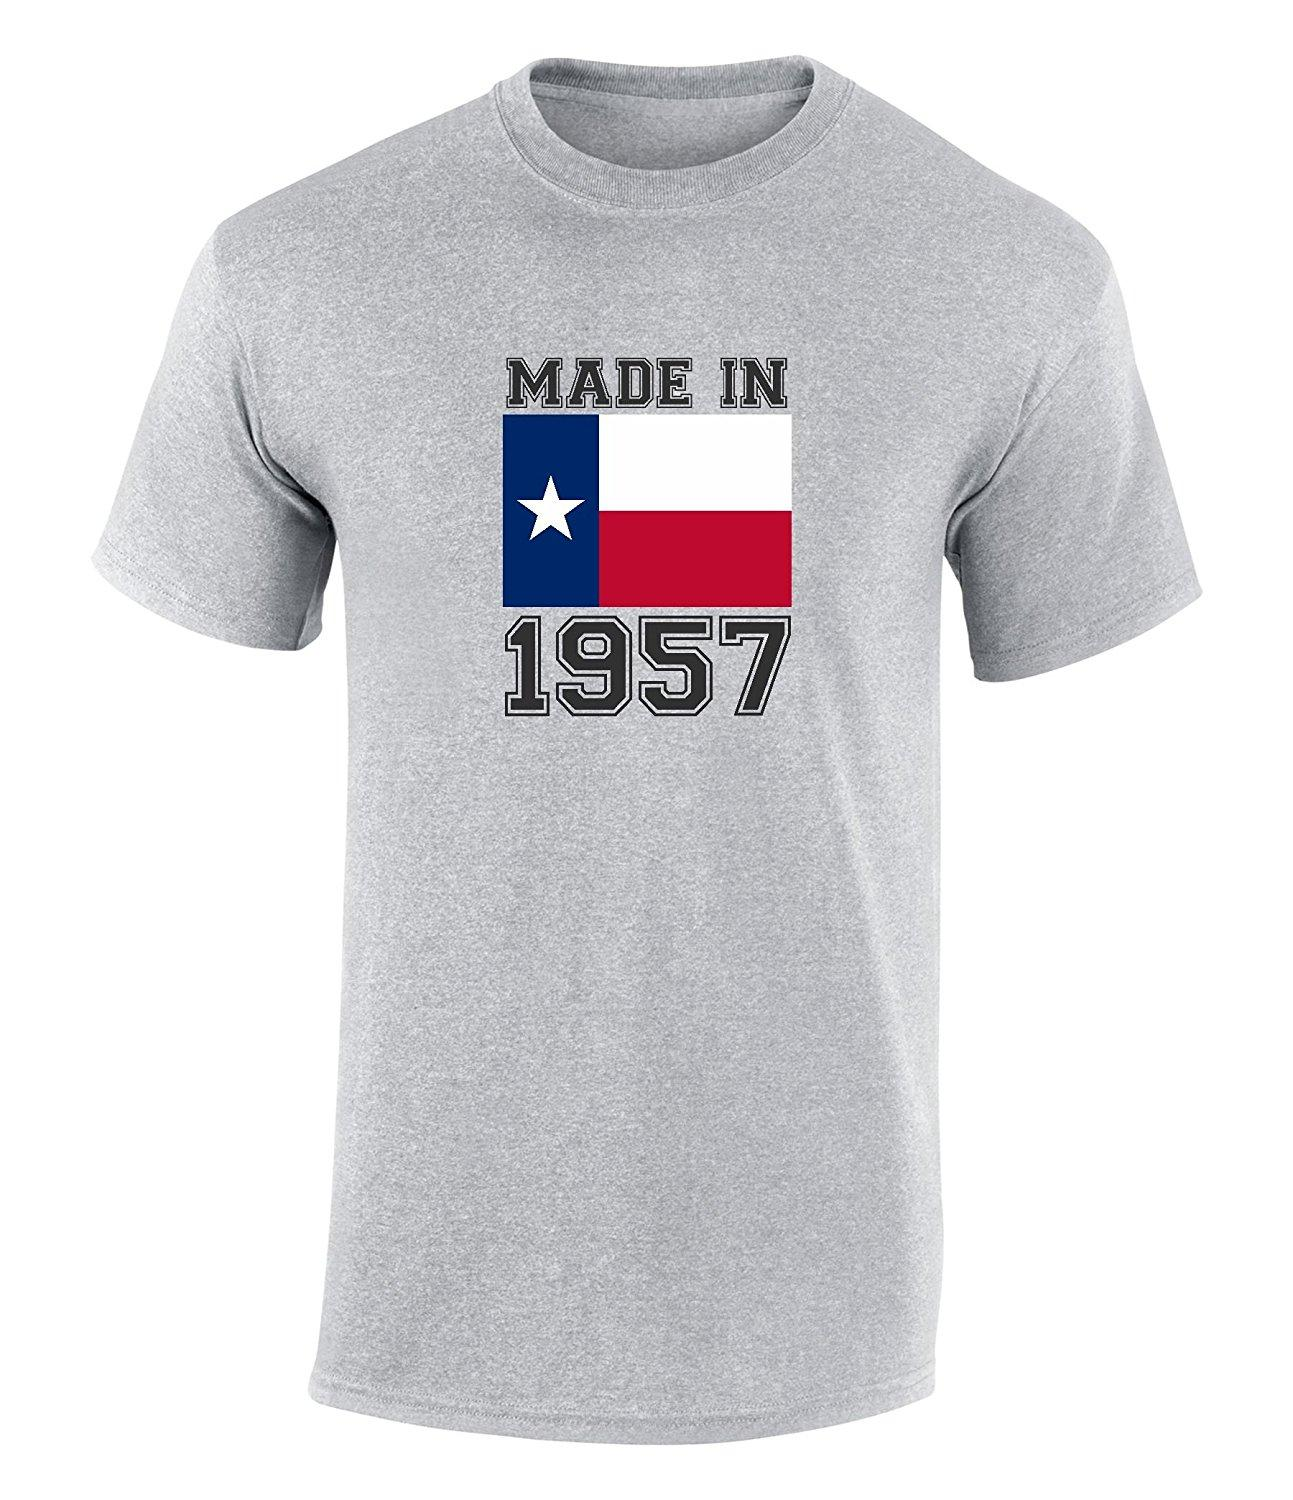 Happy 60th Birthday Gift T Shirt With Made In Texas 1957 Graphic Print Novelty Cool Tops Men Short Sleeve Tshirt 24 Hours Buy Shirts Online